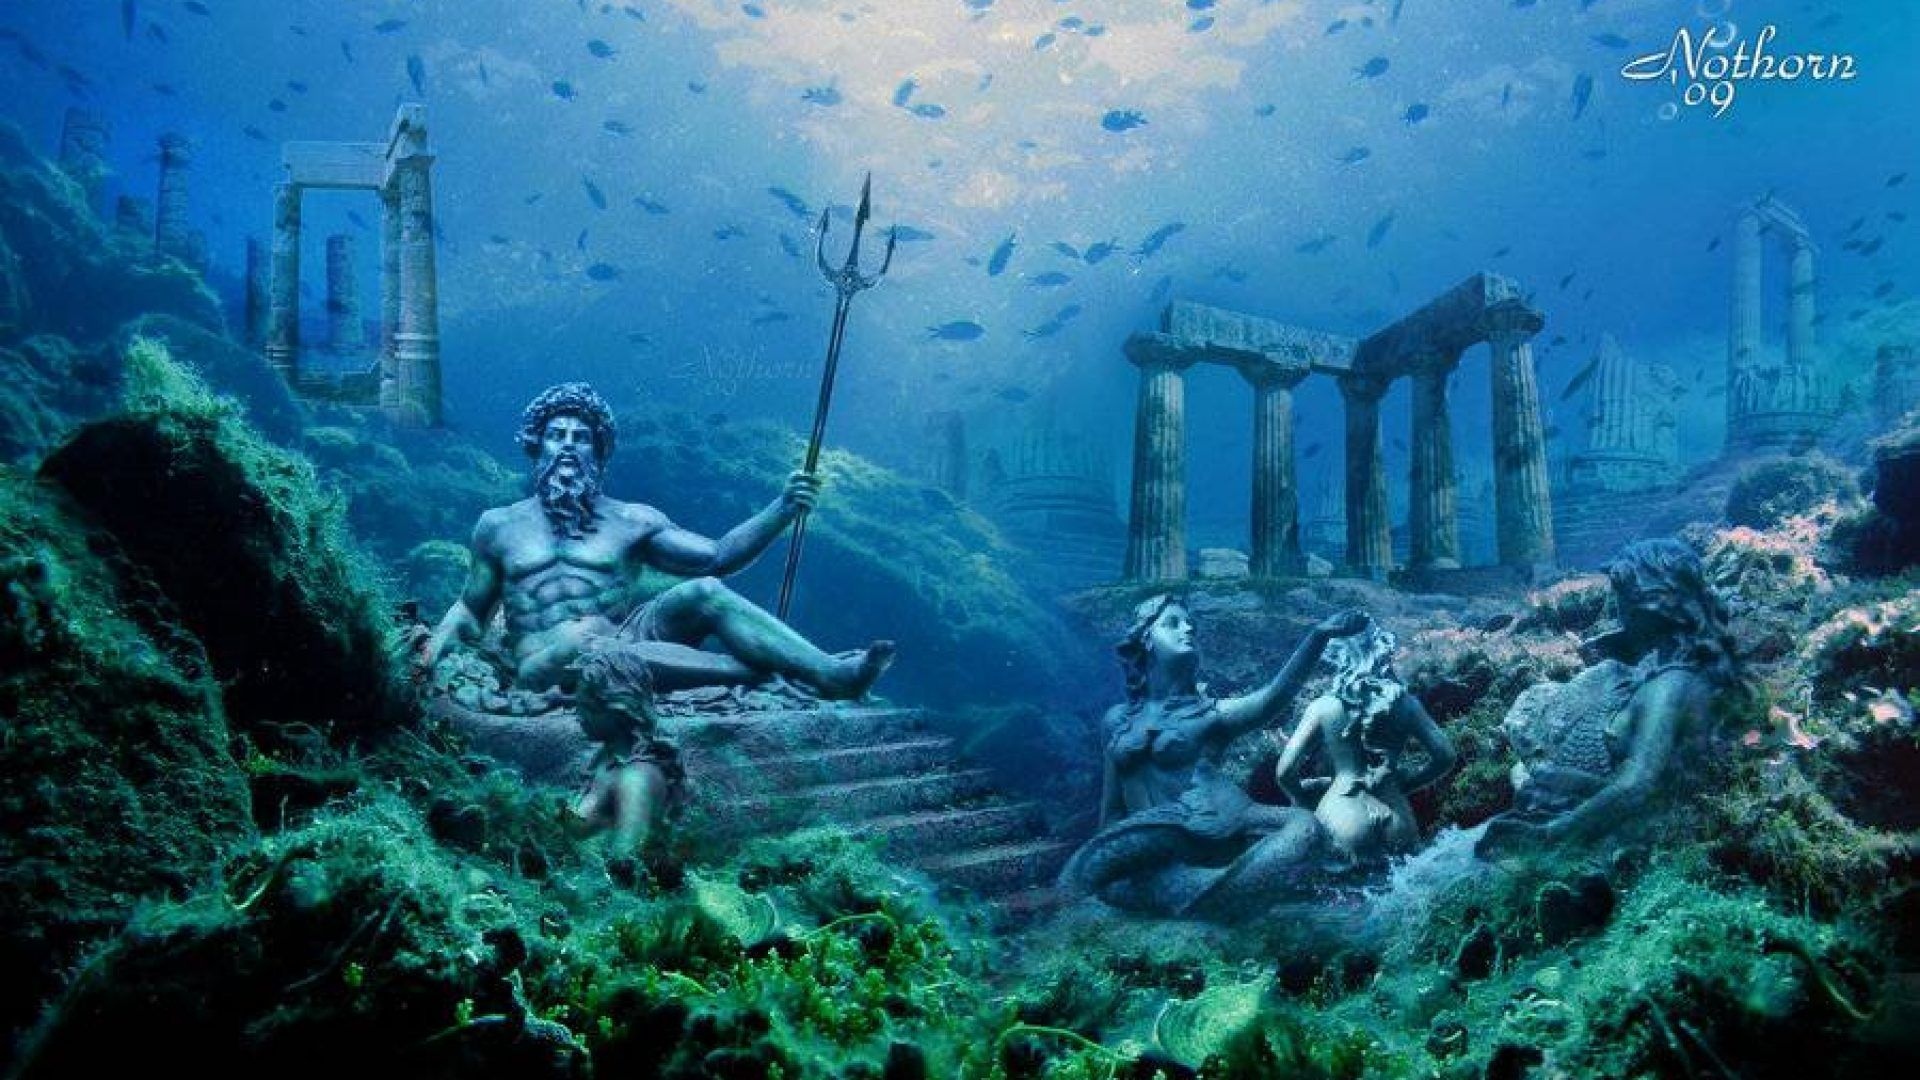 70 Atlantis Underwater Wallpapers Download At Wallpaperbro Underwater Wallpaper Underwater City Underwater Photography